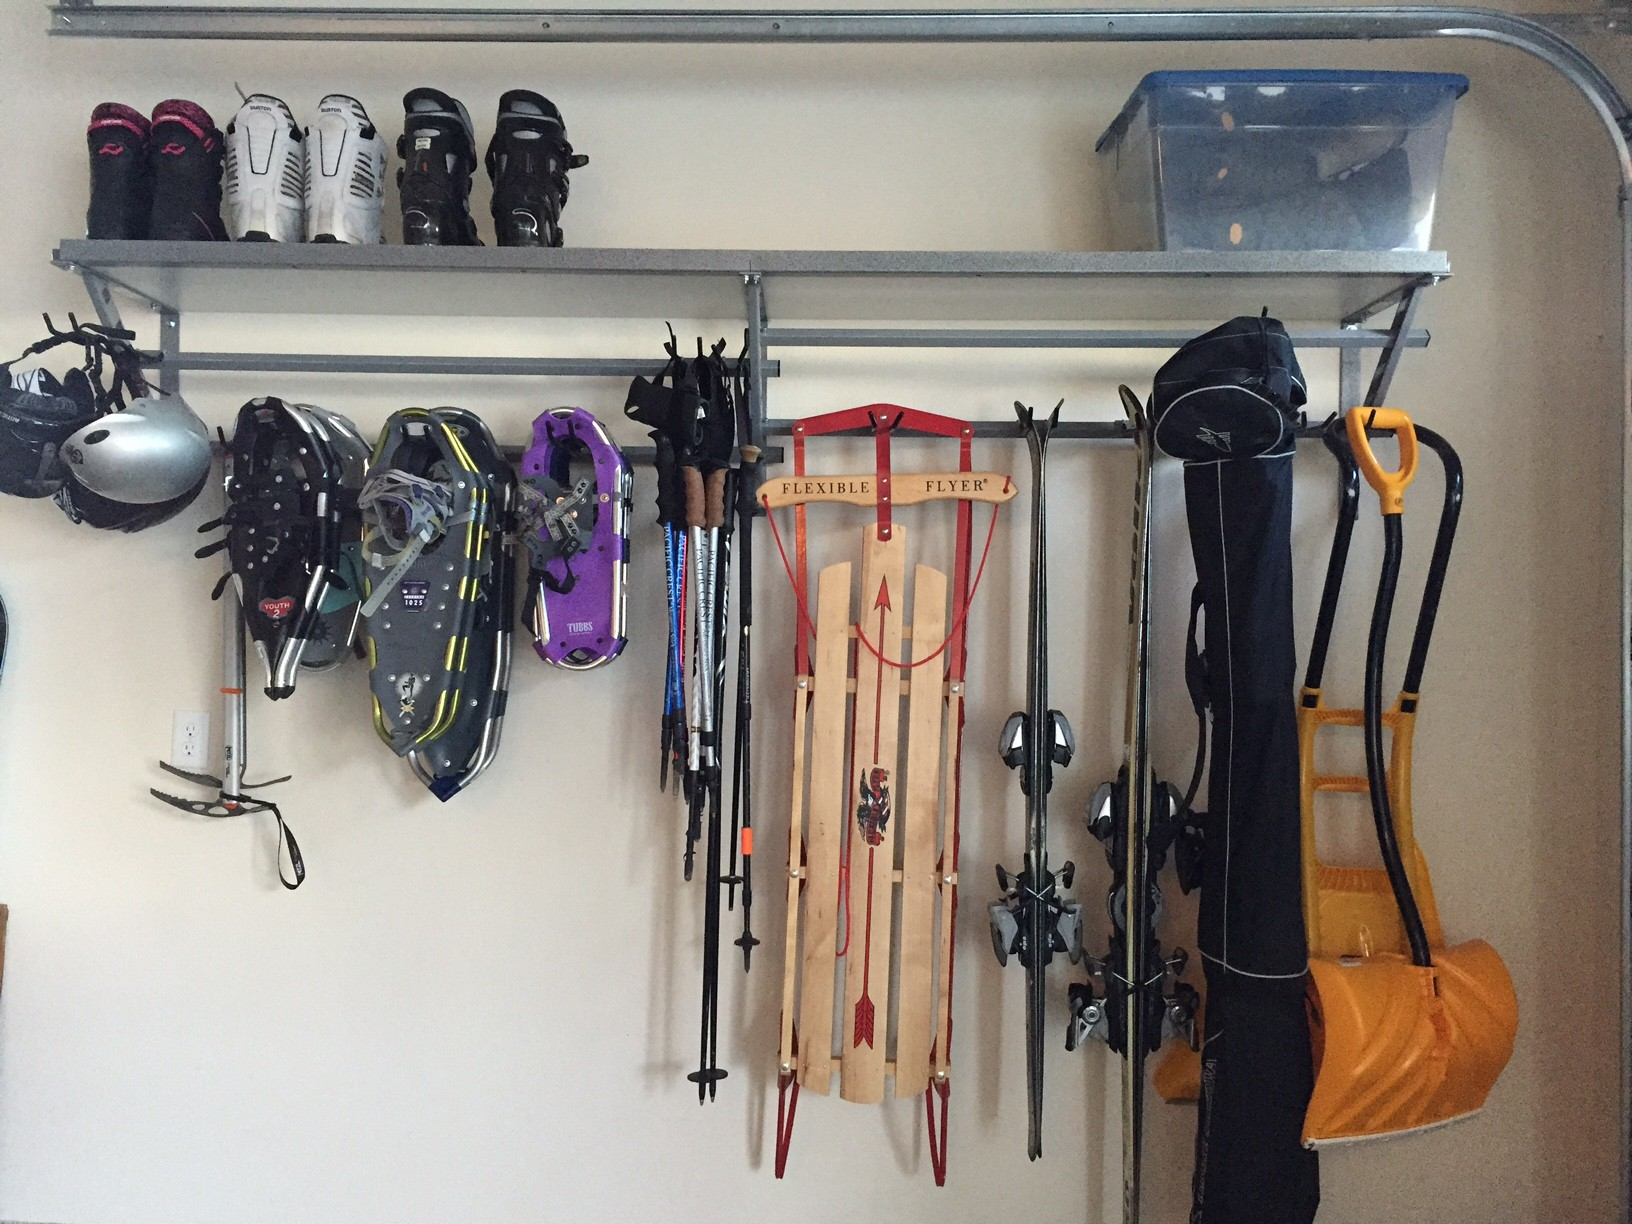 Monkey Bar (company) storage was a great solution for winter gear.